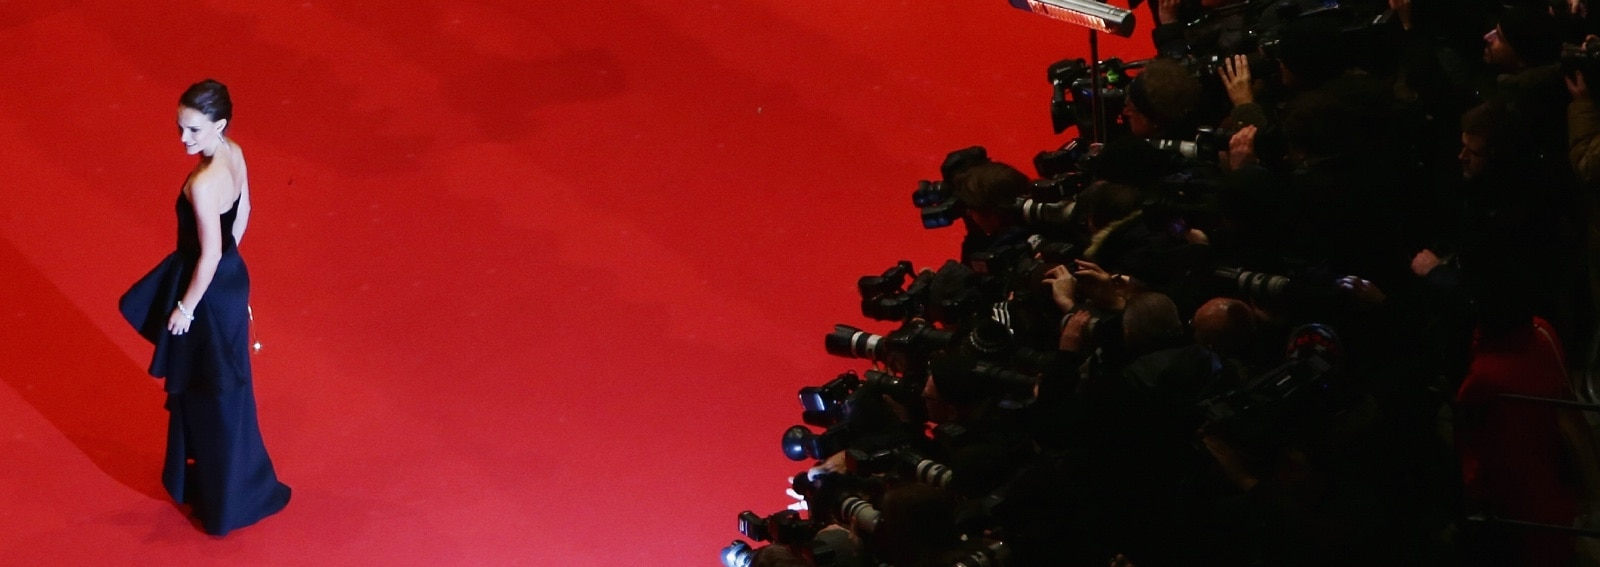 GettyImages-come venire bene in foto pose star red carpet